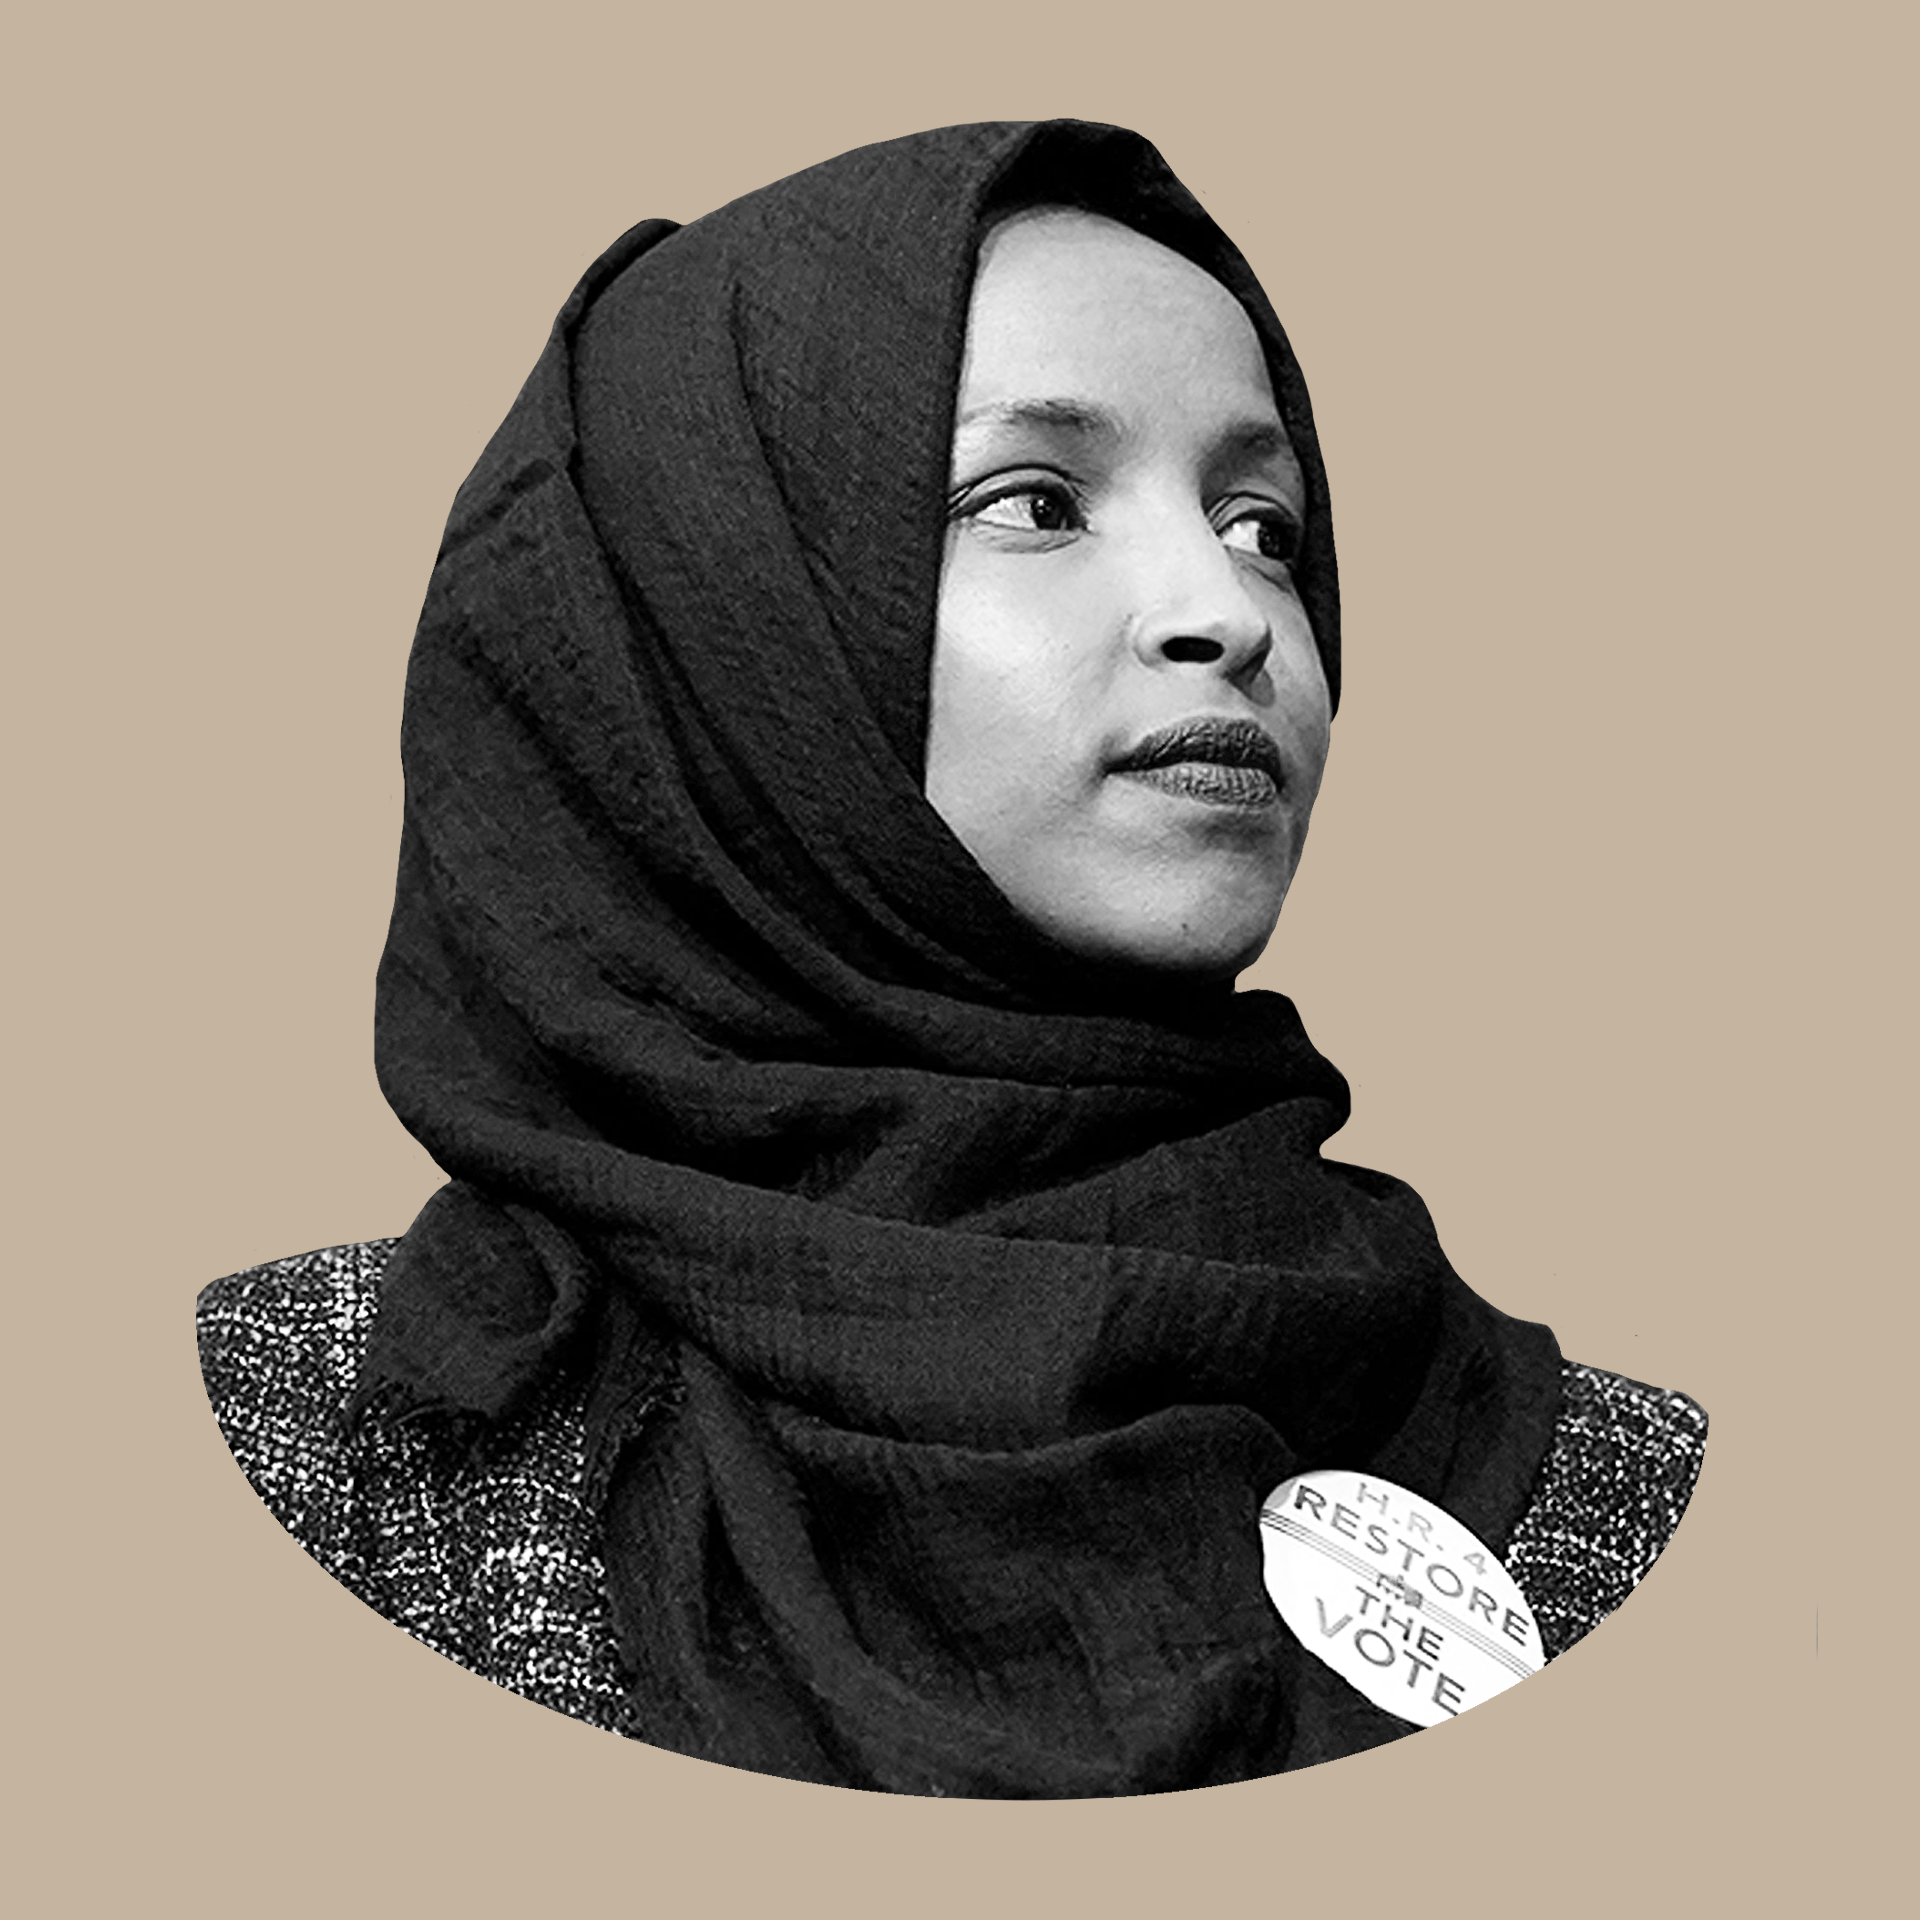 Headshot of Rep. Ilhan Omar